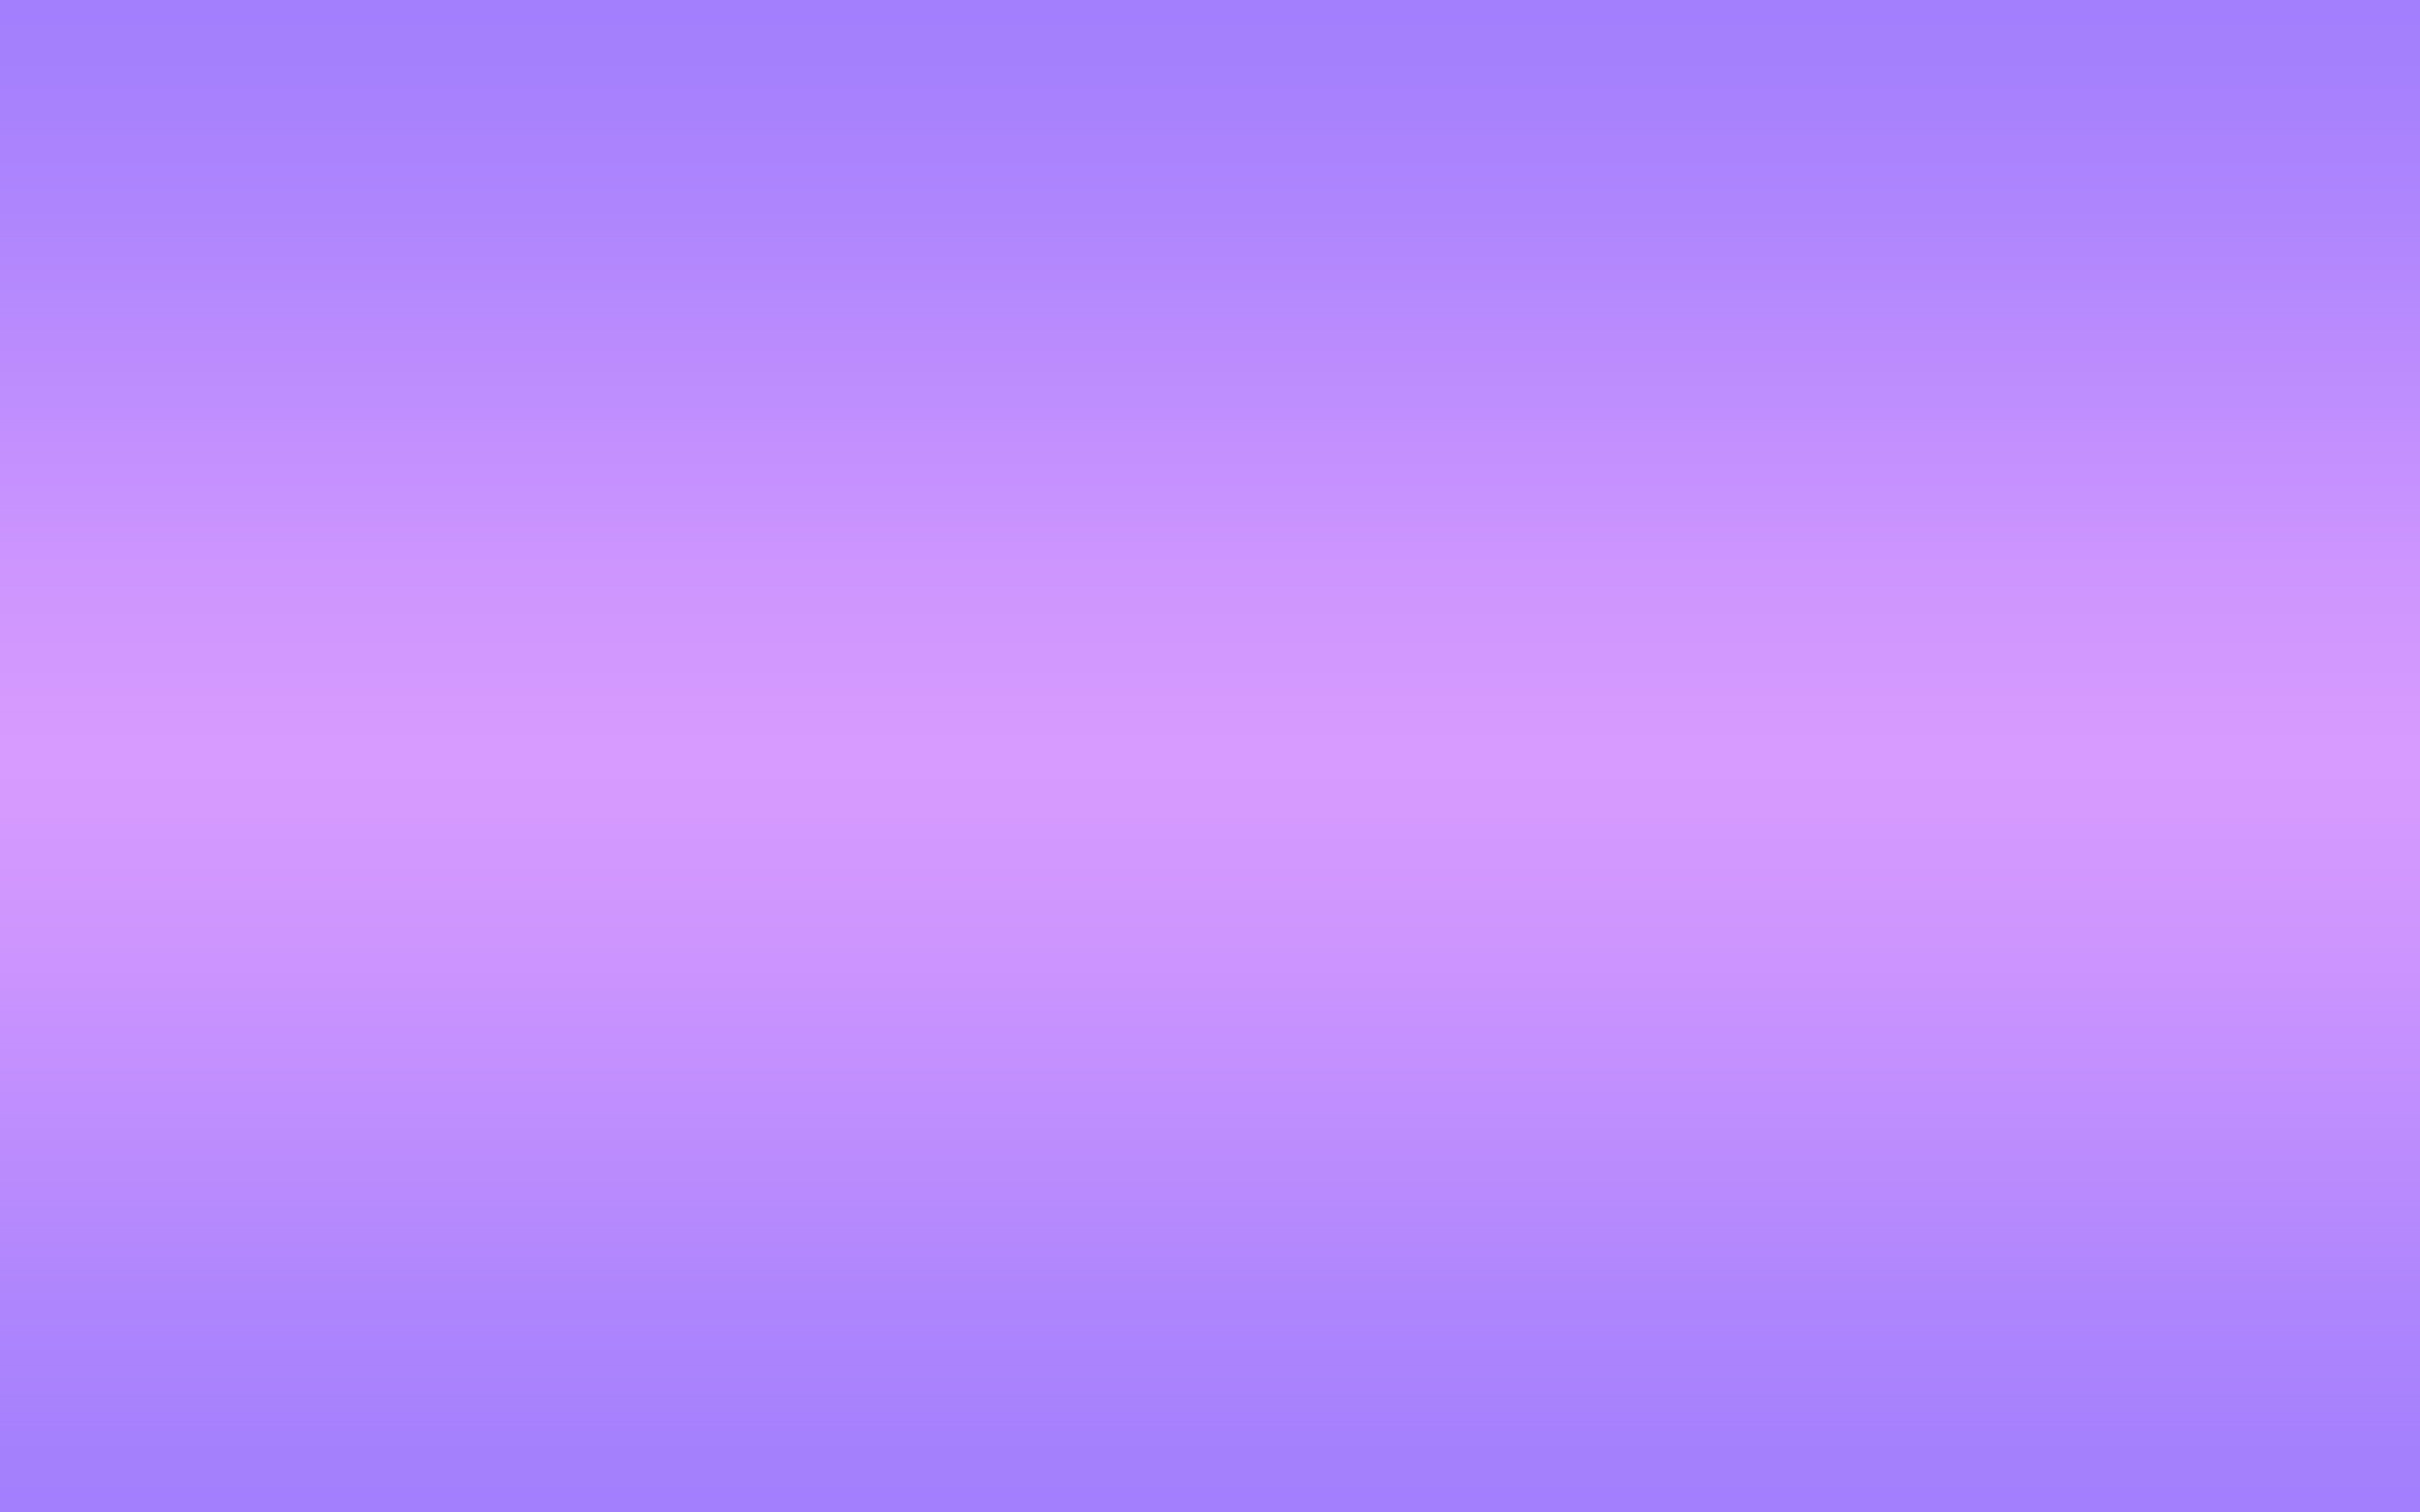 Iphone 5s Cool Wallpaper Light Purple Background 183 ① Download Free Beautiful